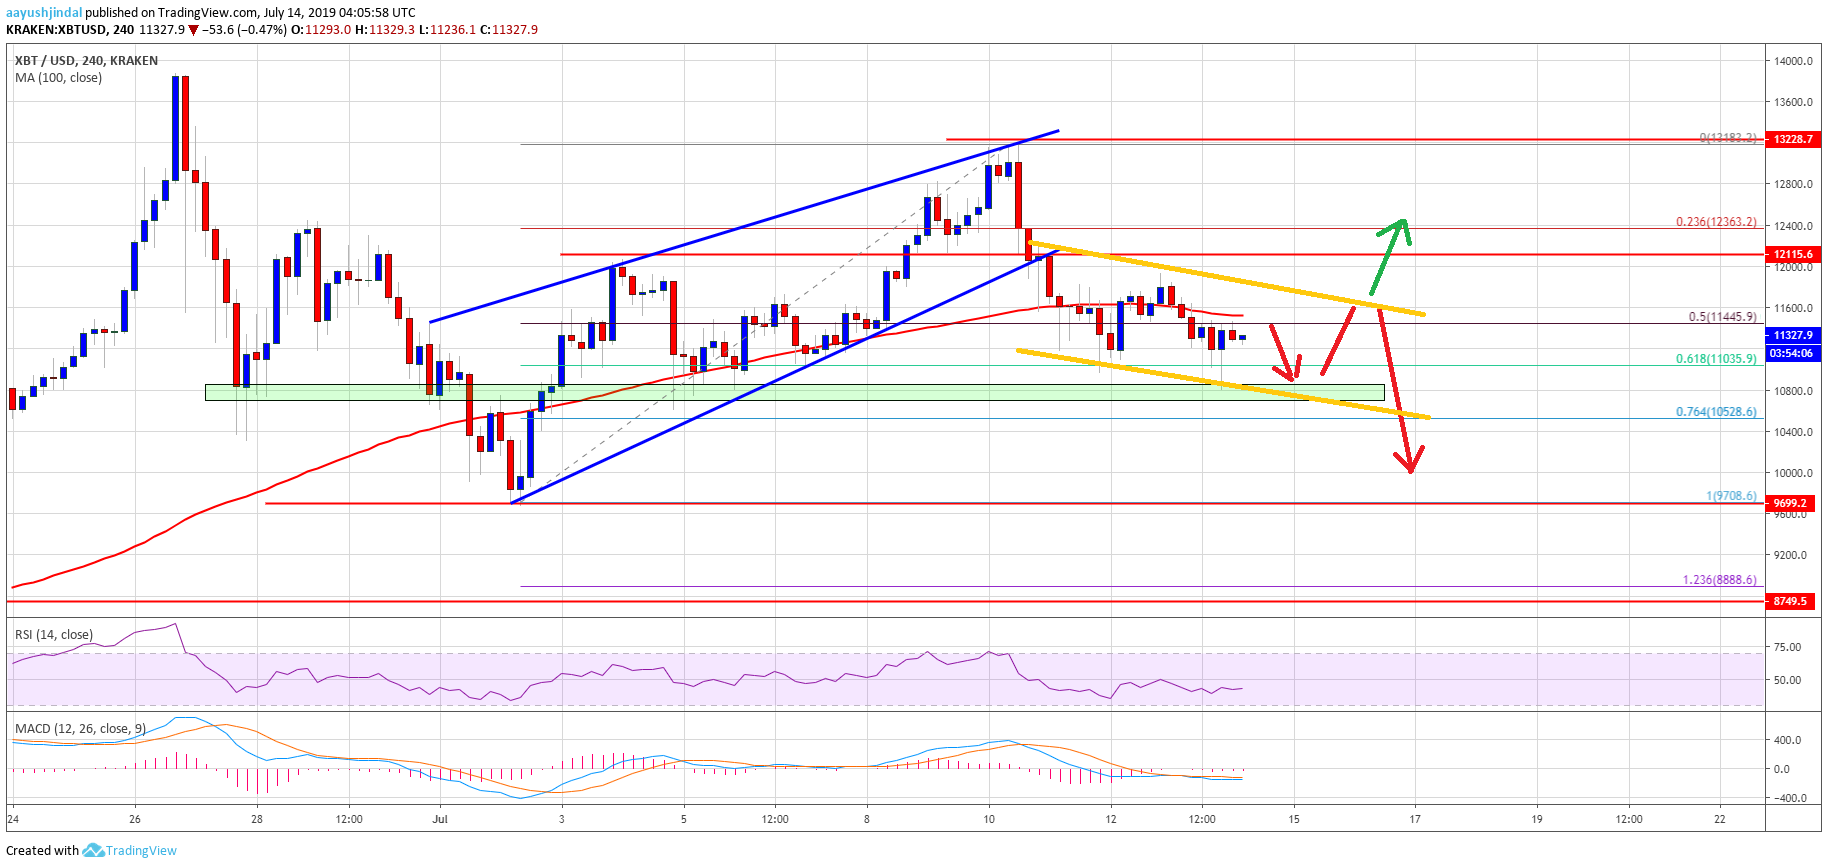 Bitcoin (BTC) Price Weekly Forecast: Risk of Extended Drop To $8,880